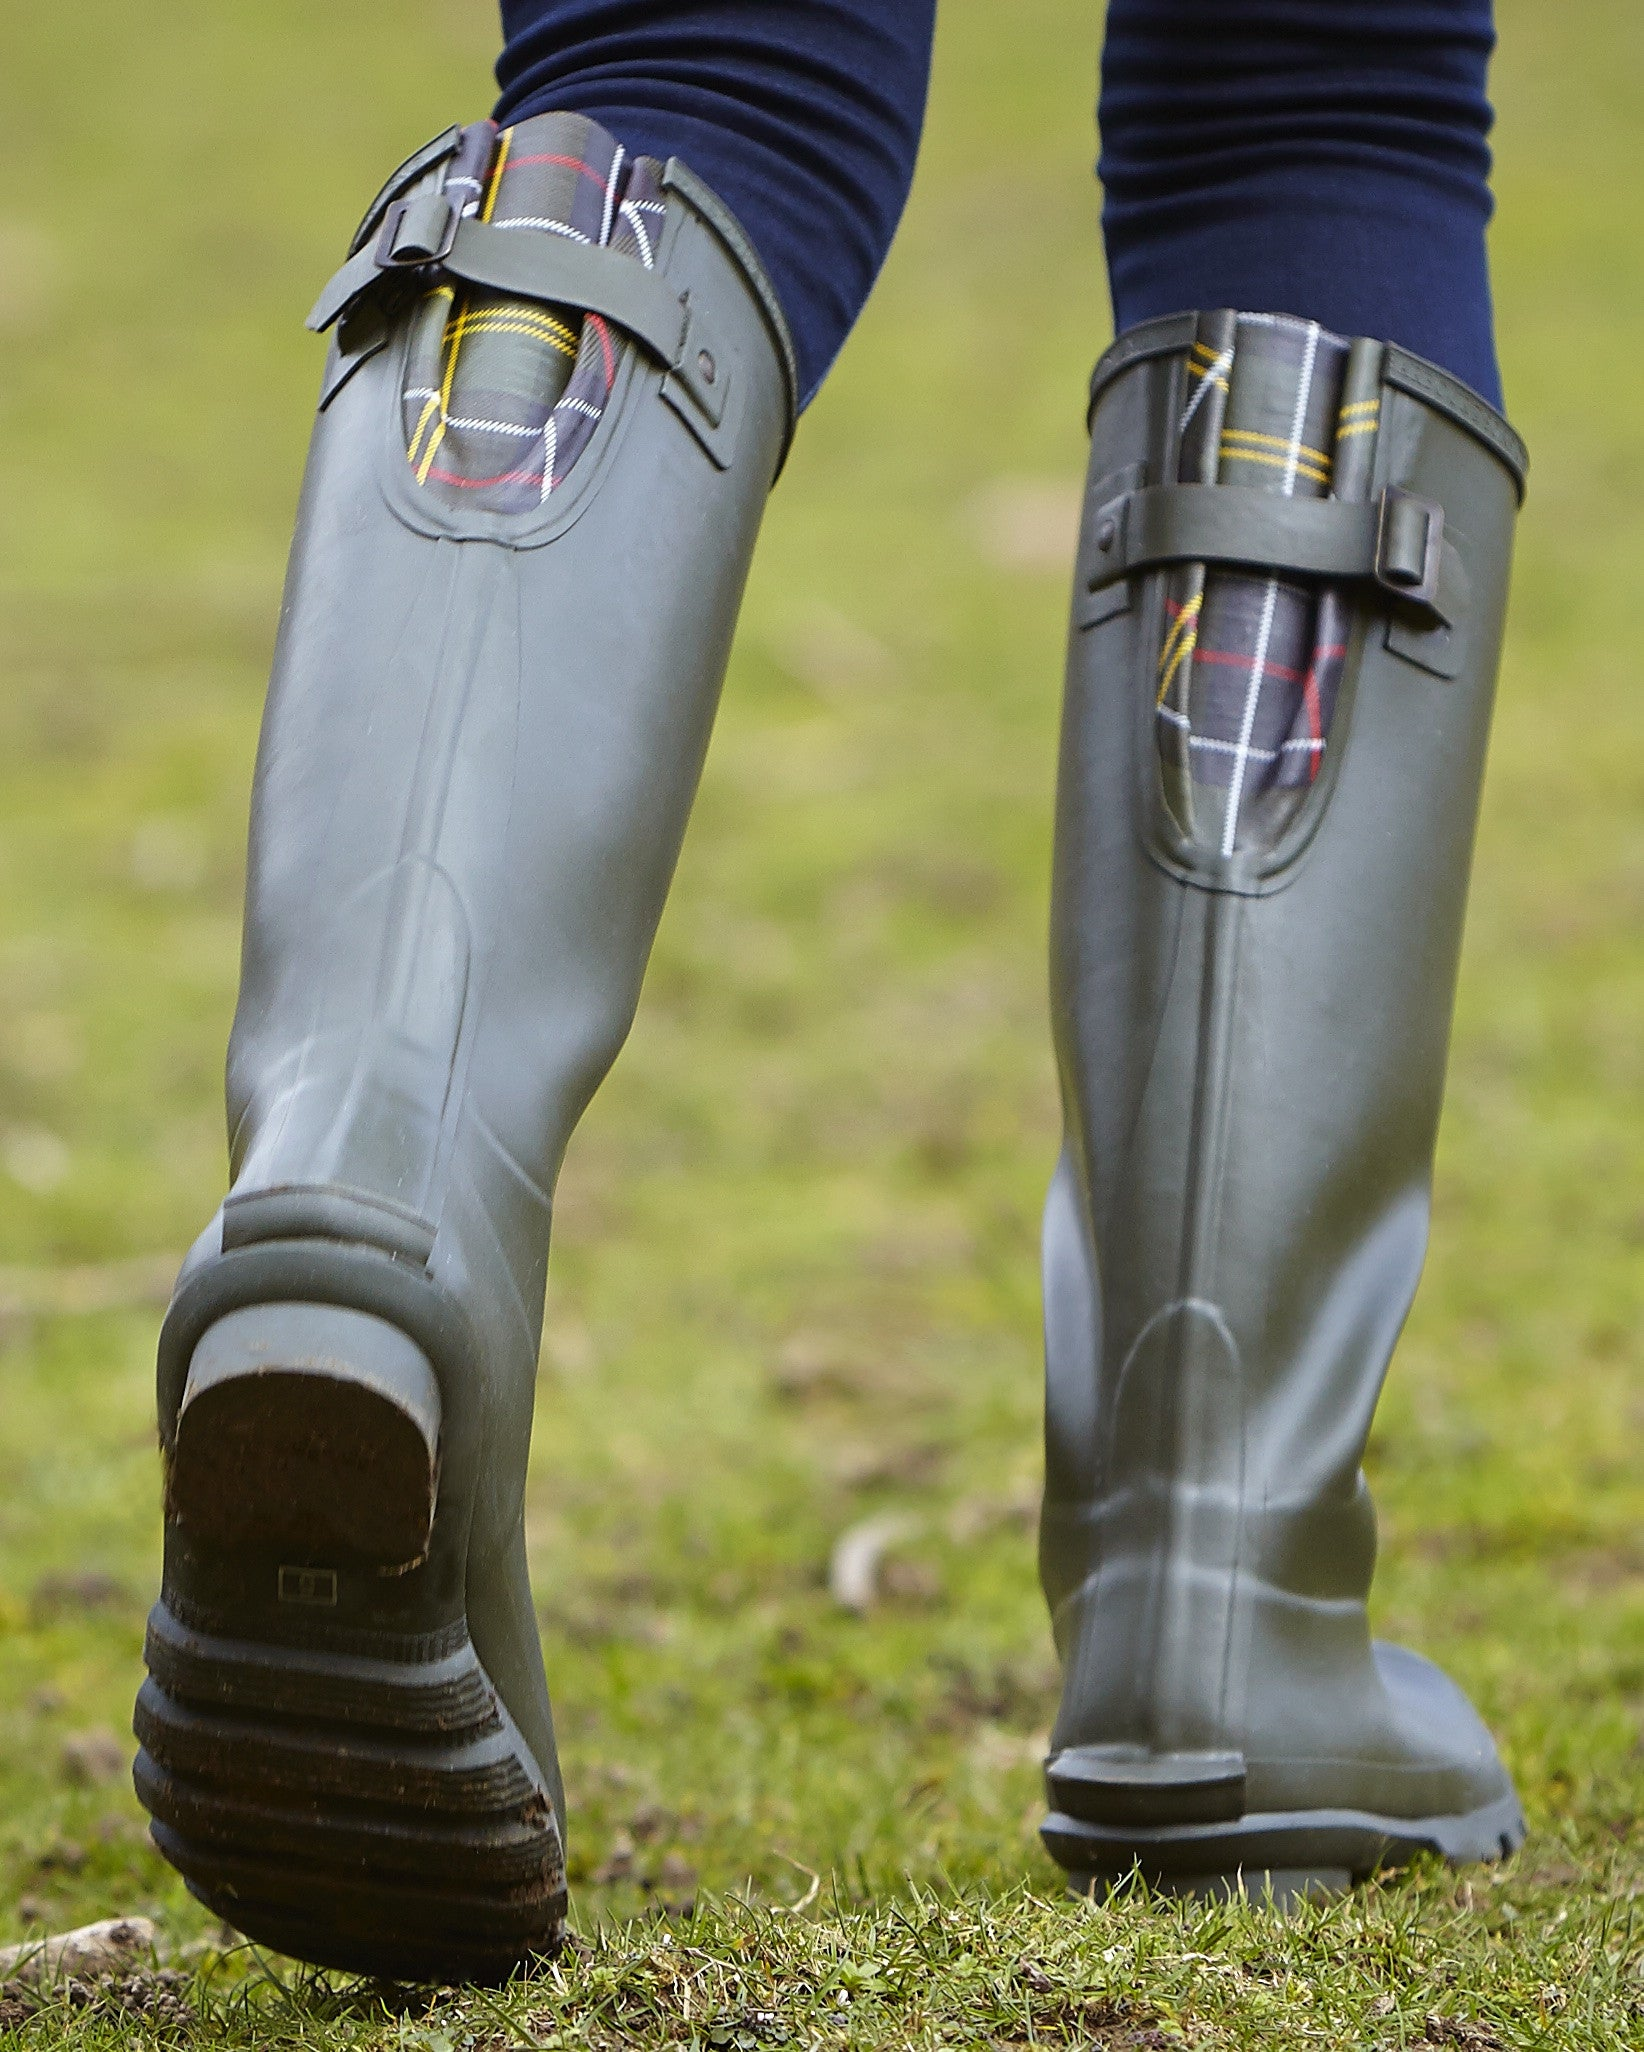 Barbour Boots - New adjustable